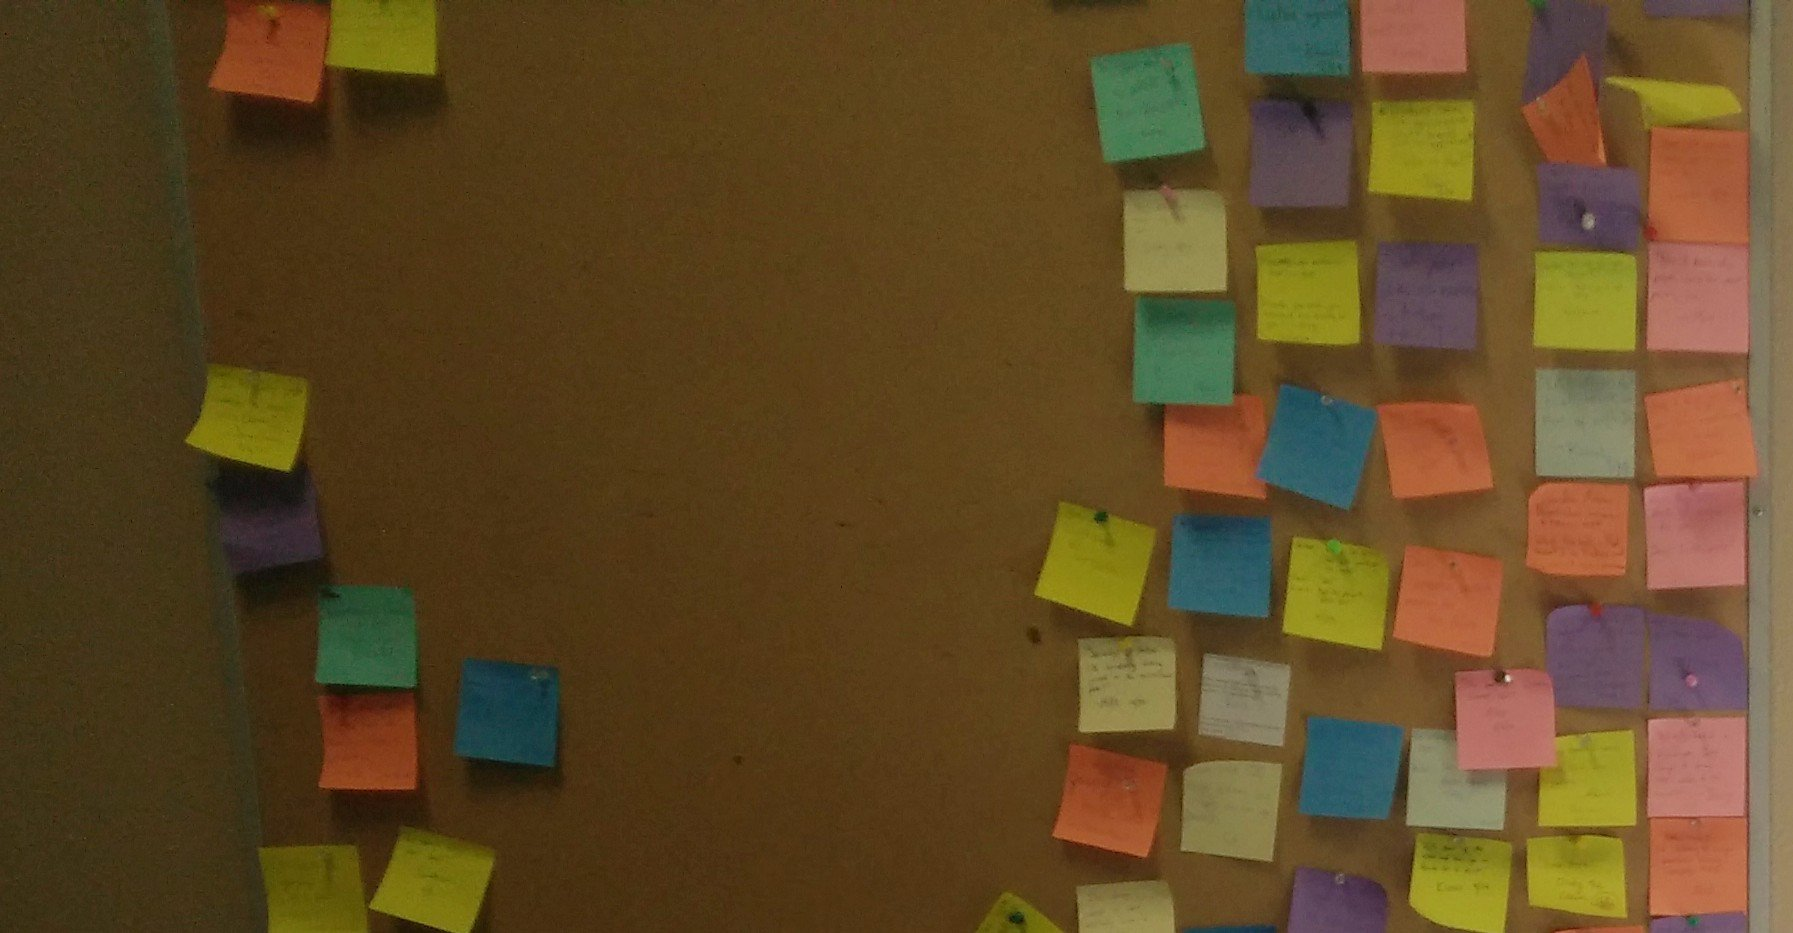 Photo of a cork board pinned with dozens of post-it notes from the student newsroom.